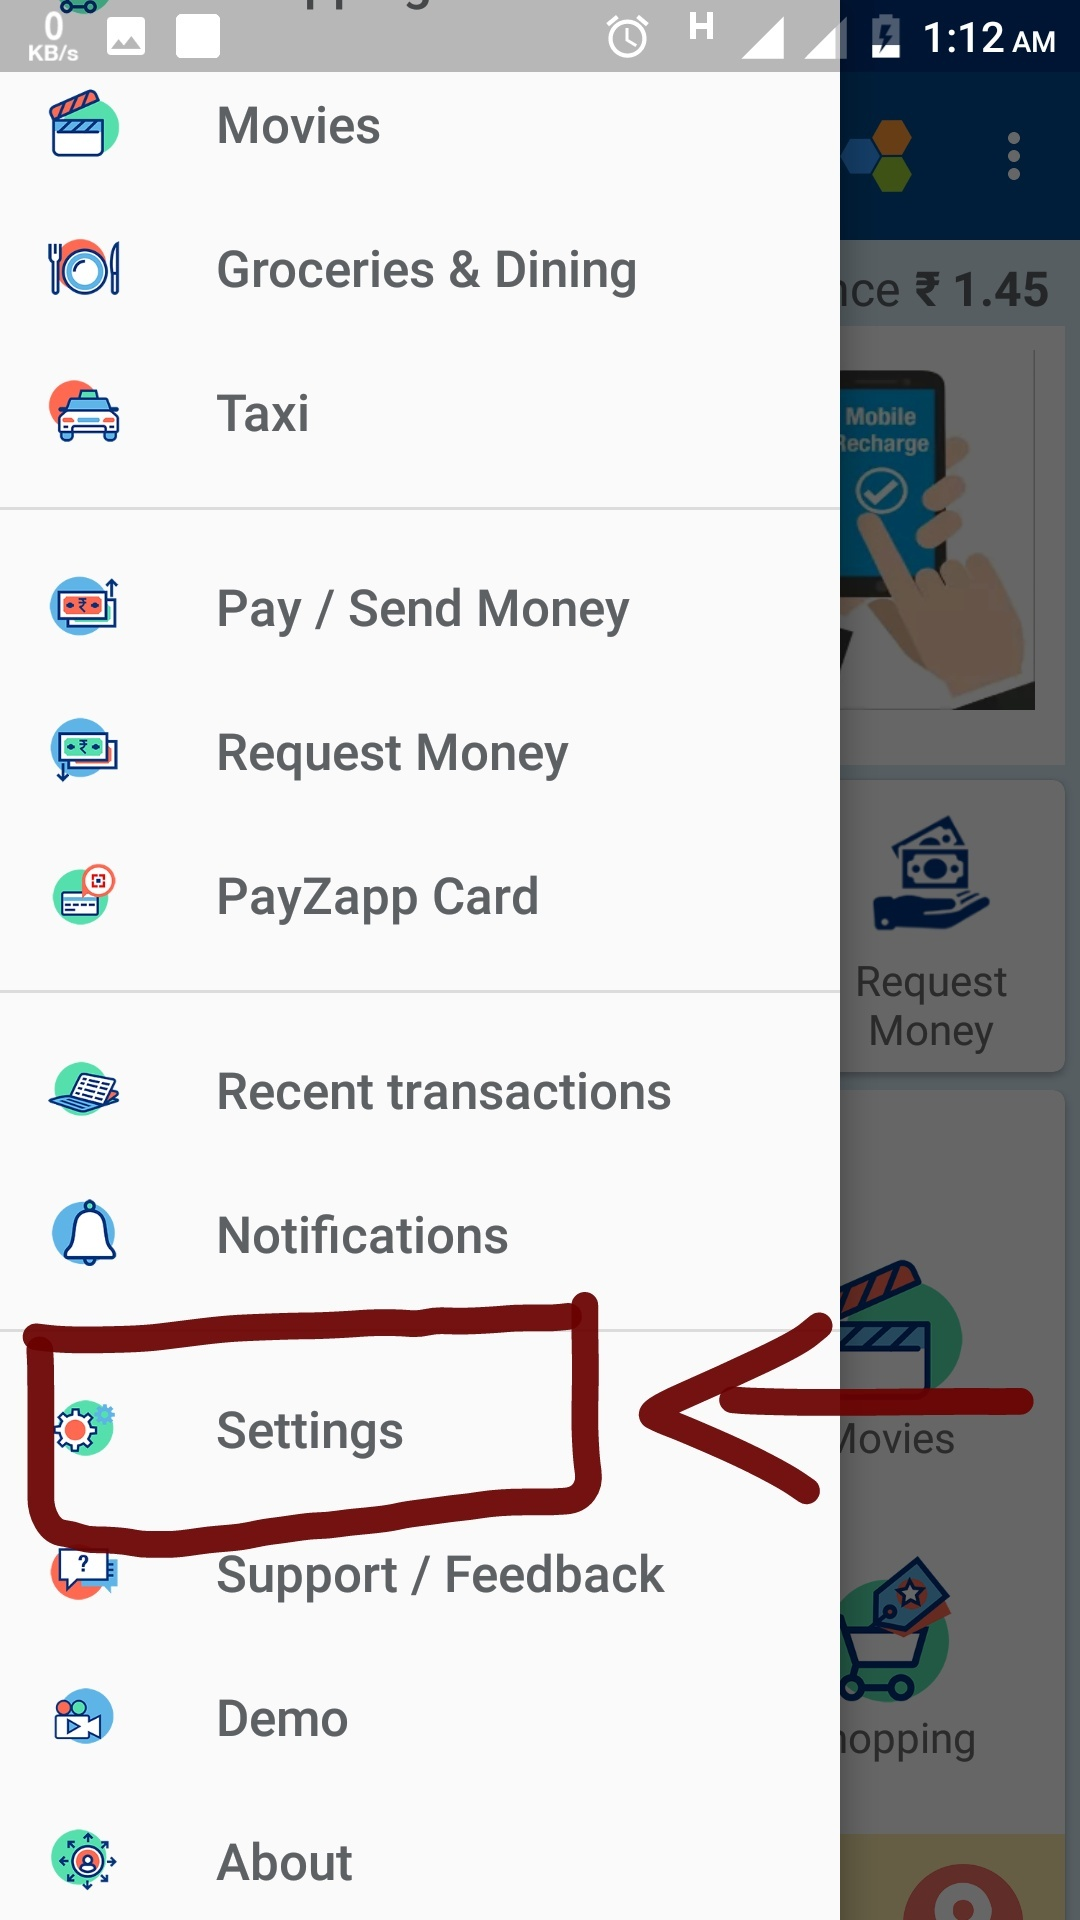 How to update my kyc on payzapp if there is no update kyc